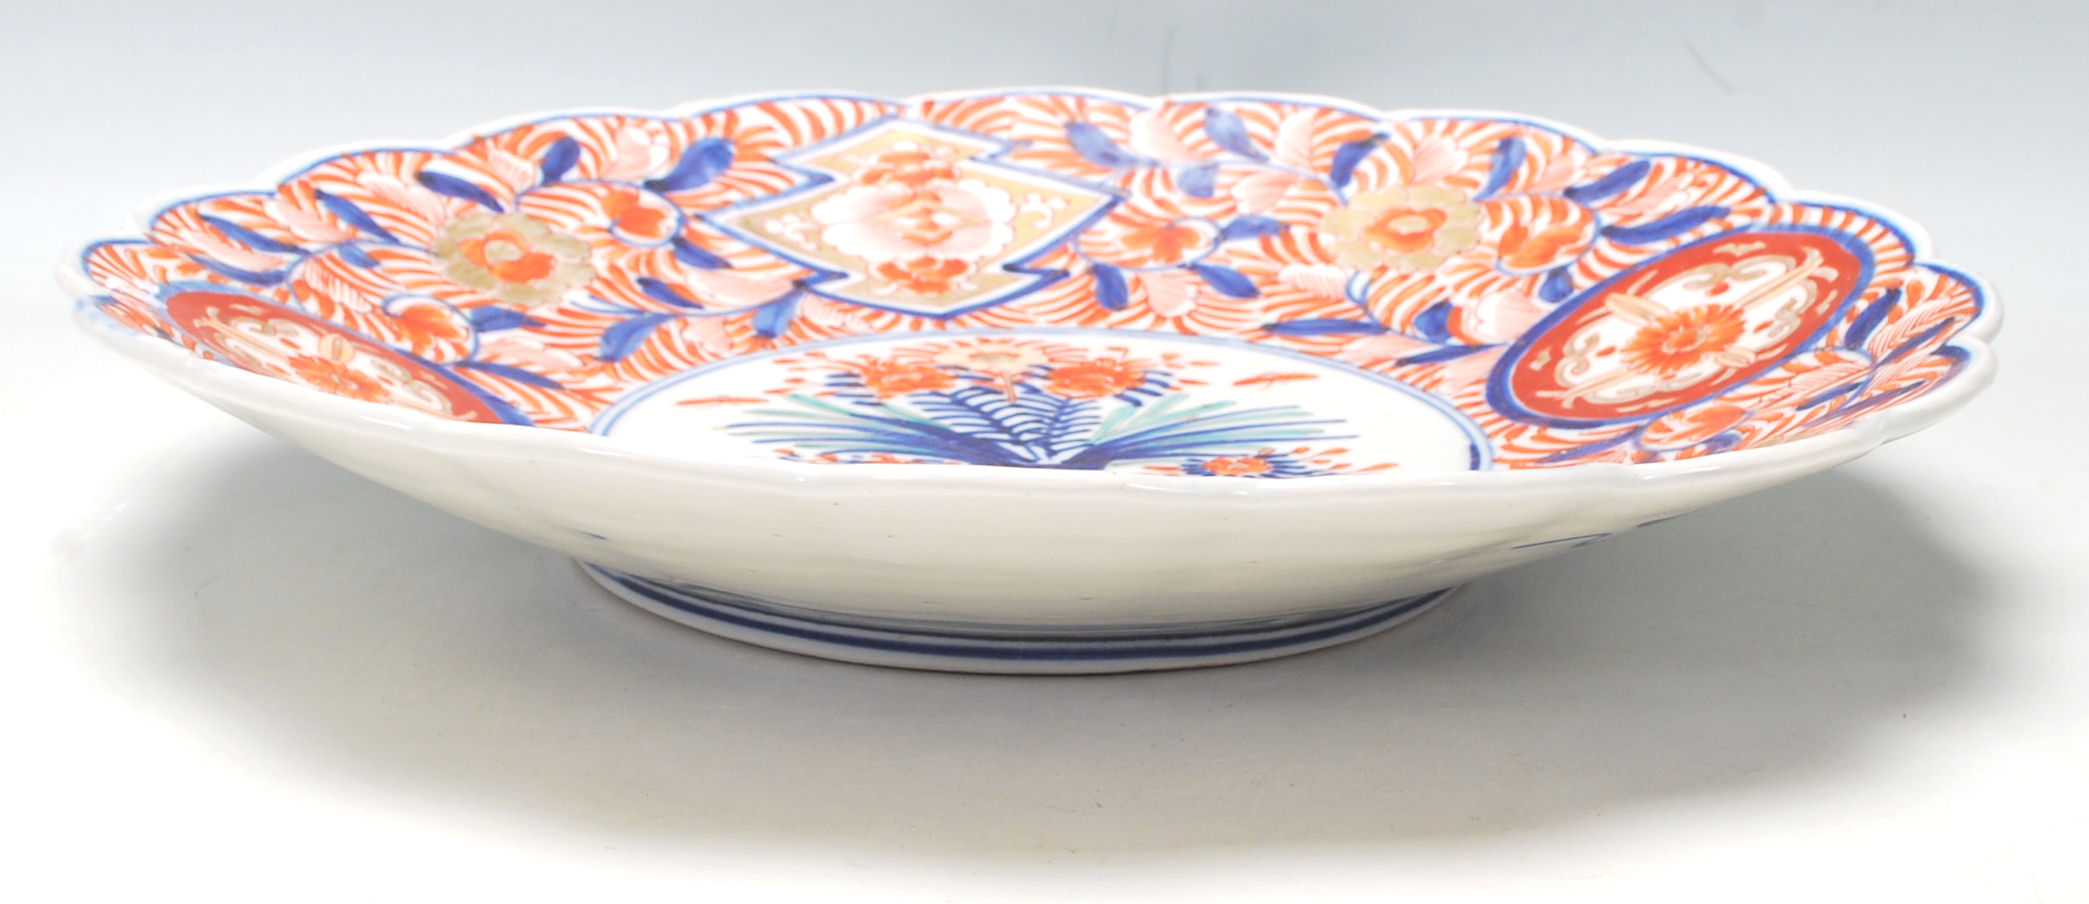 Lot 46 - A 19th Century Japanese Imari charger plate with scalloped rim, typical decoration with a vase of